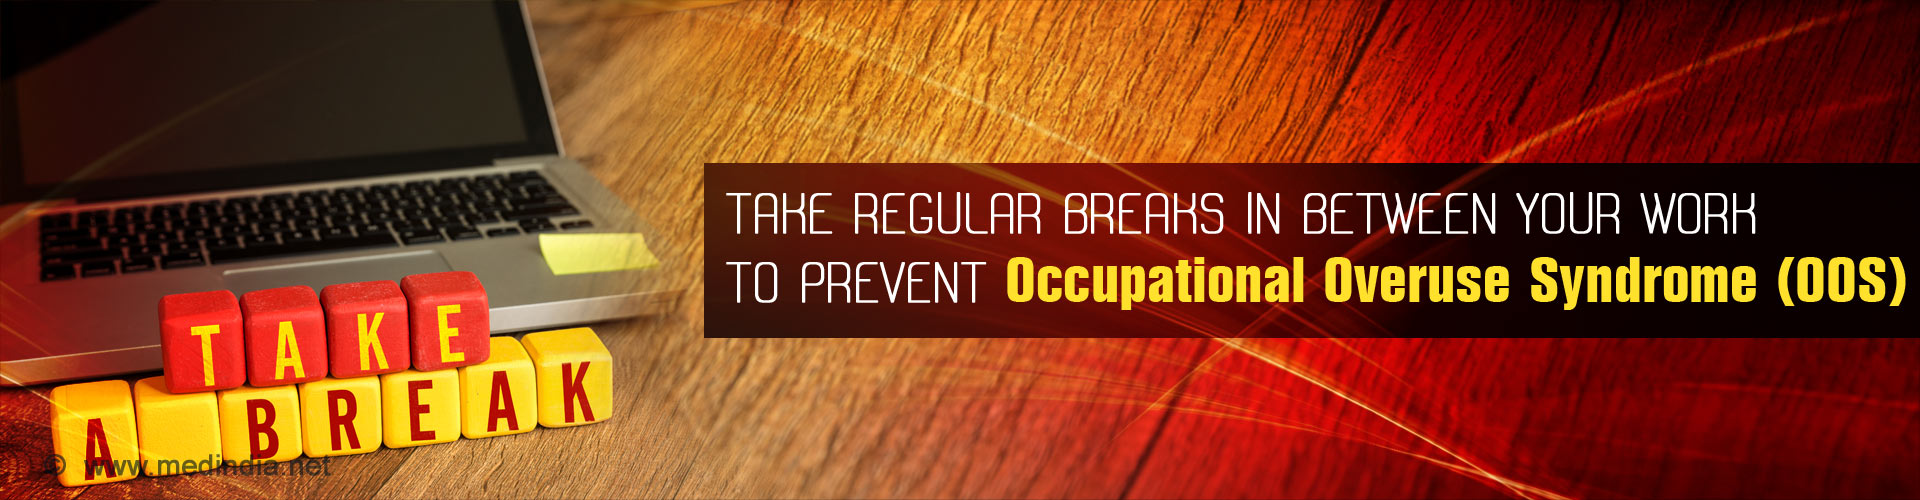 Occupational Overuse Syndrome - Causes, Symptoms, Diagnosis, Treatment, Prevention